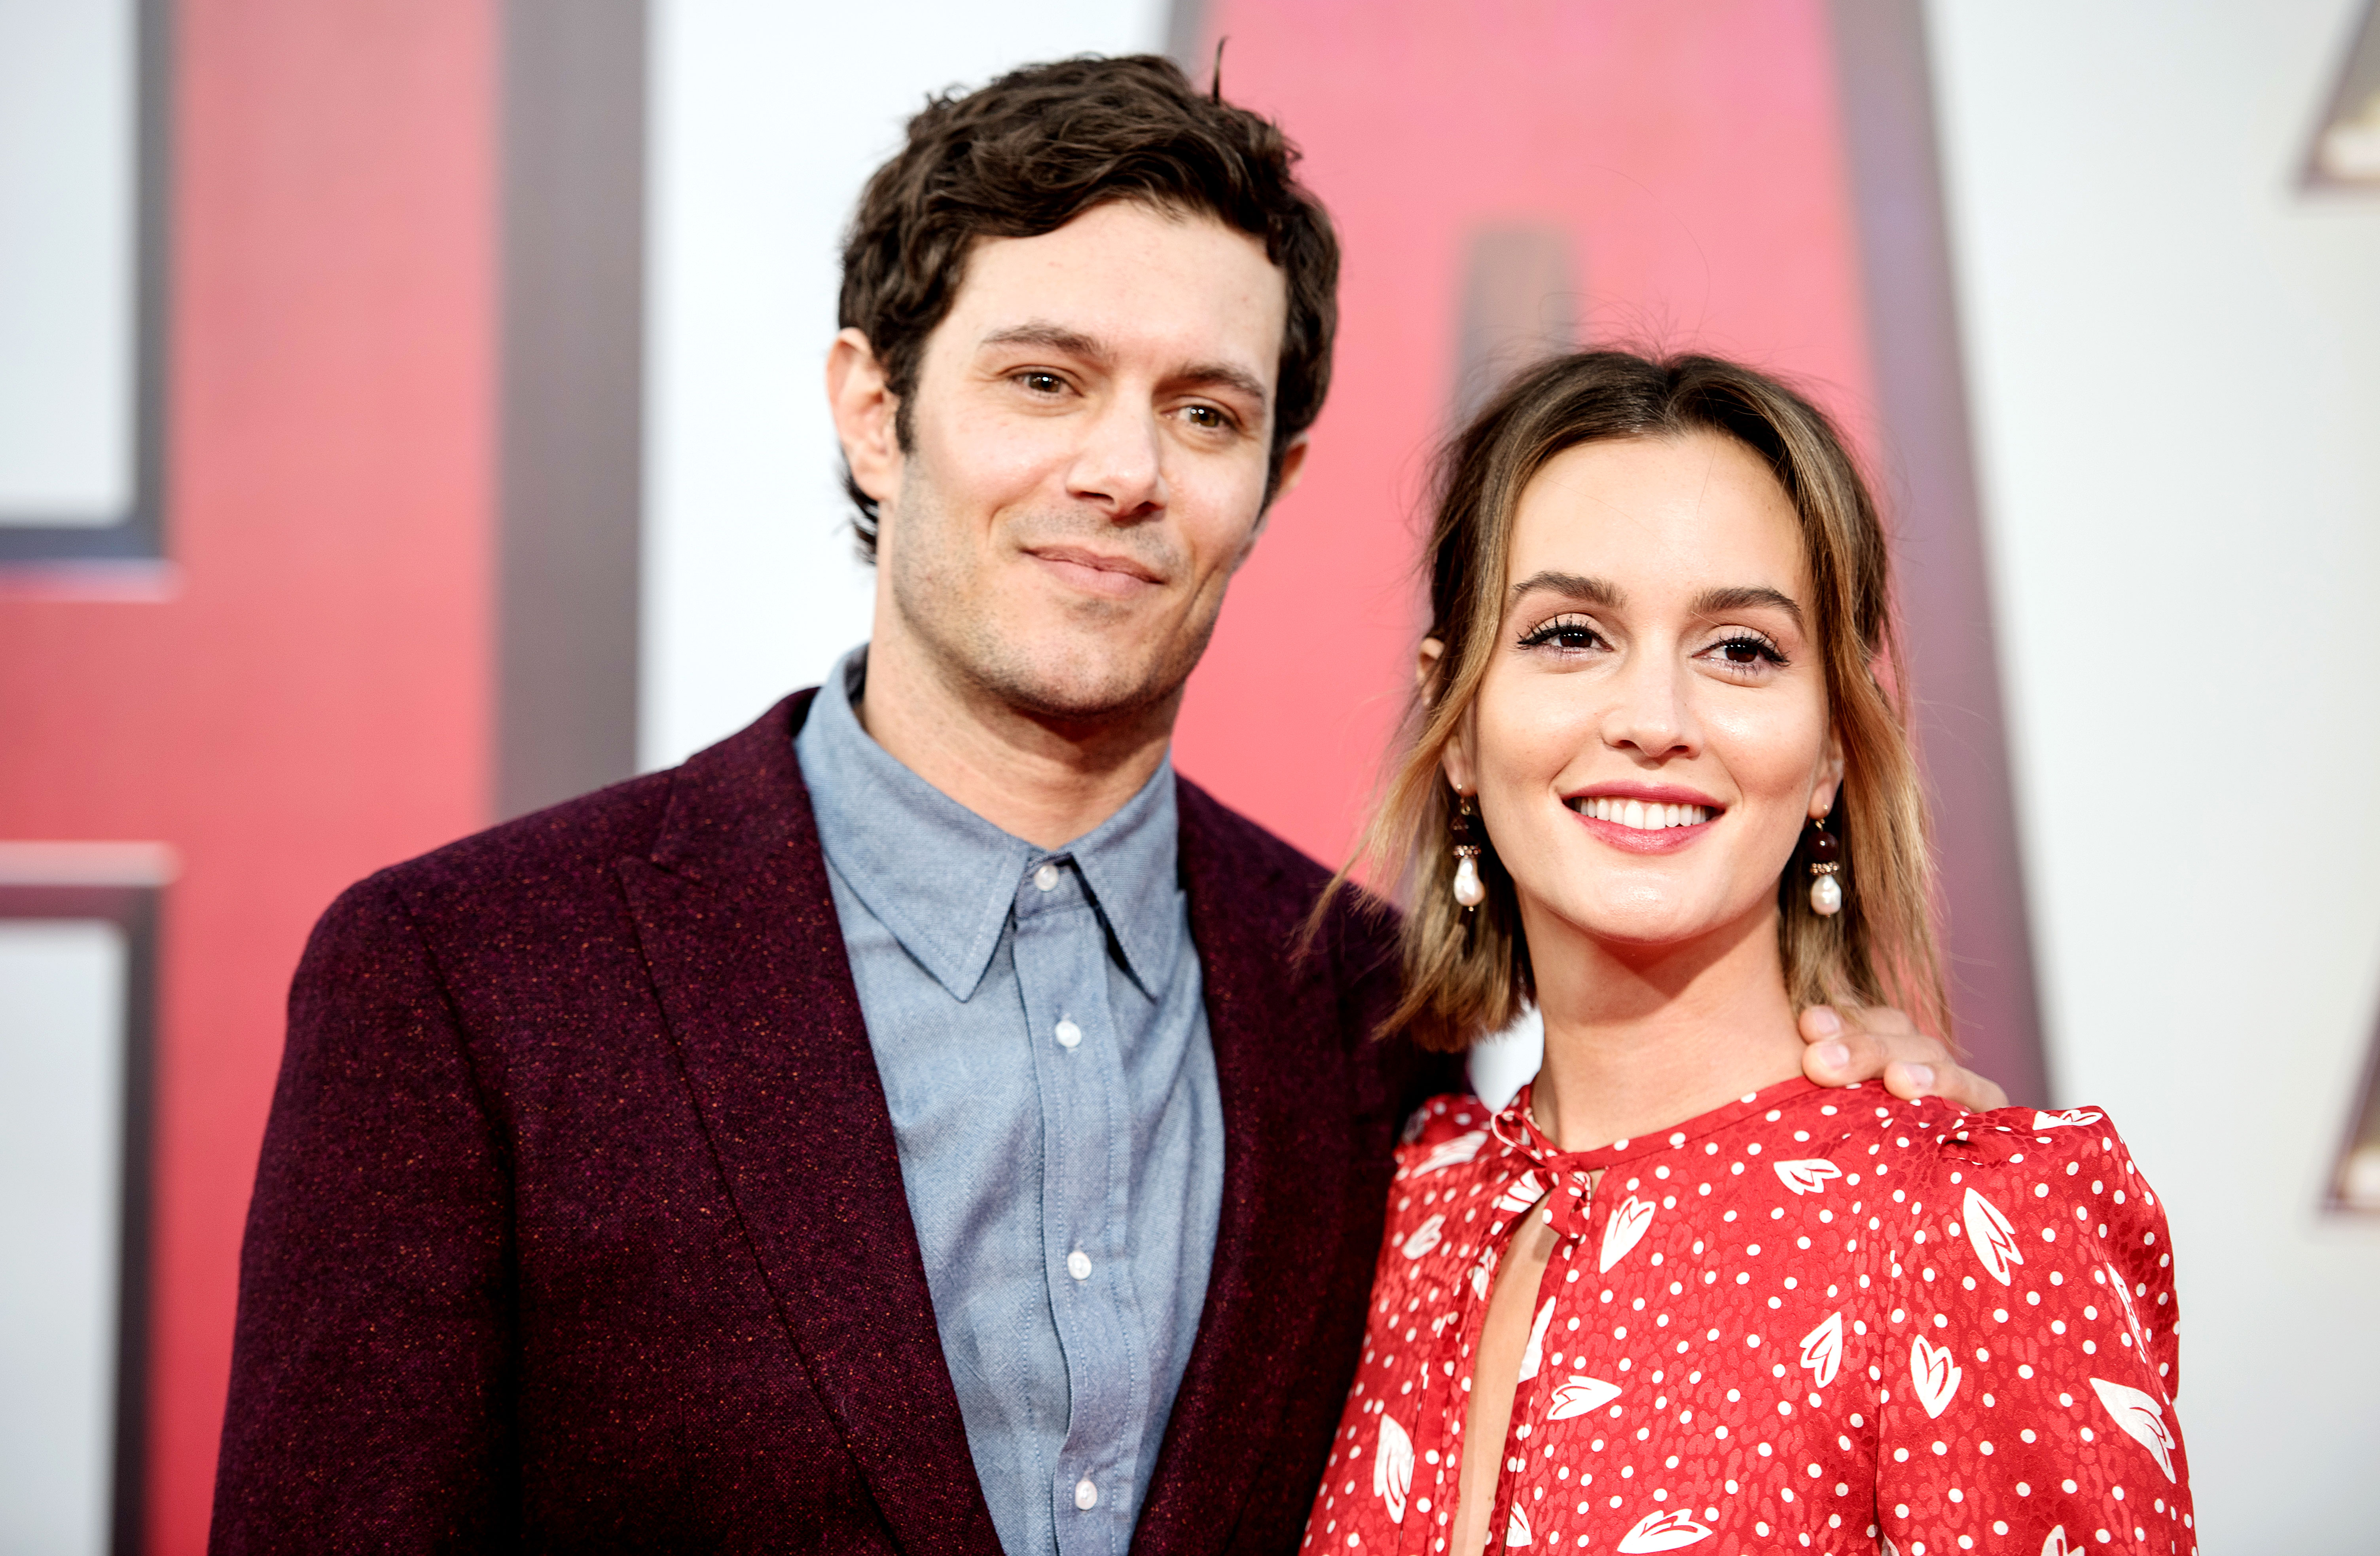 """Adam Brody Jokes Leighton Meester Doing Gossip Girl Revival - Adam Brody and Leighton Meester at the world premiere of """"SHAZAM!"""" at TCL Chinese Theatre on March 28, 2019 in Hollywood, California."""